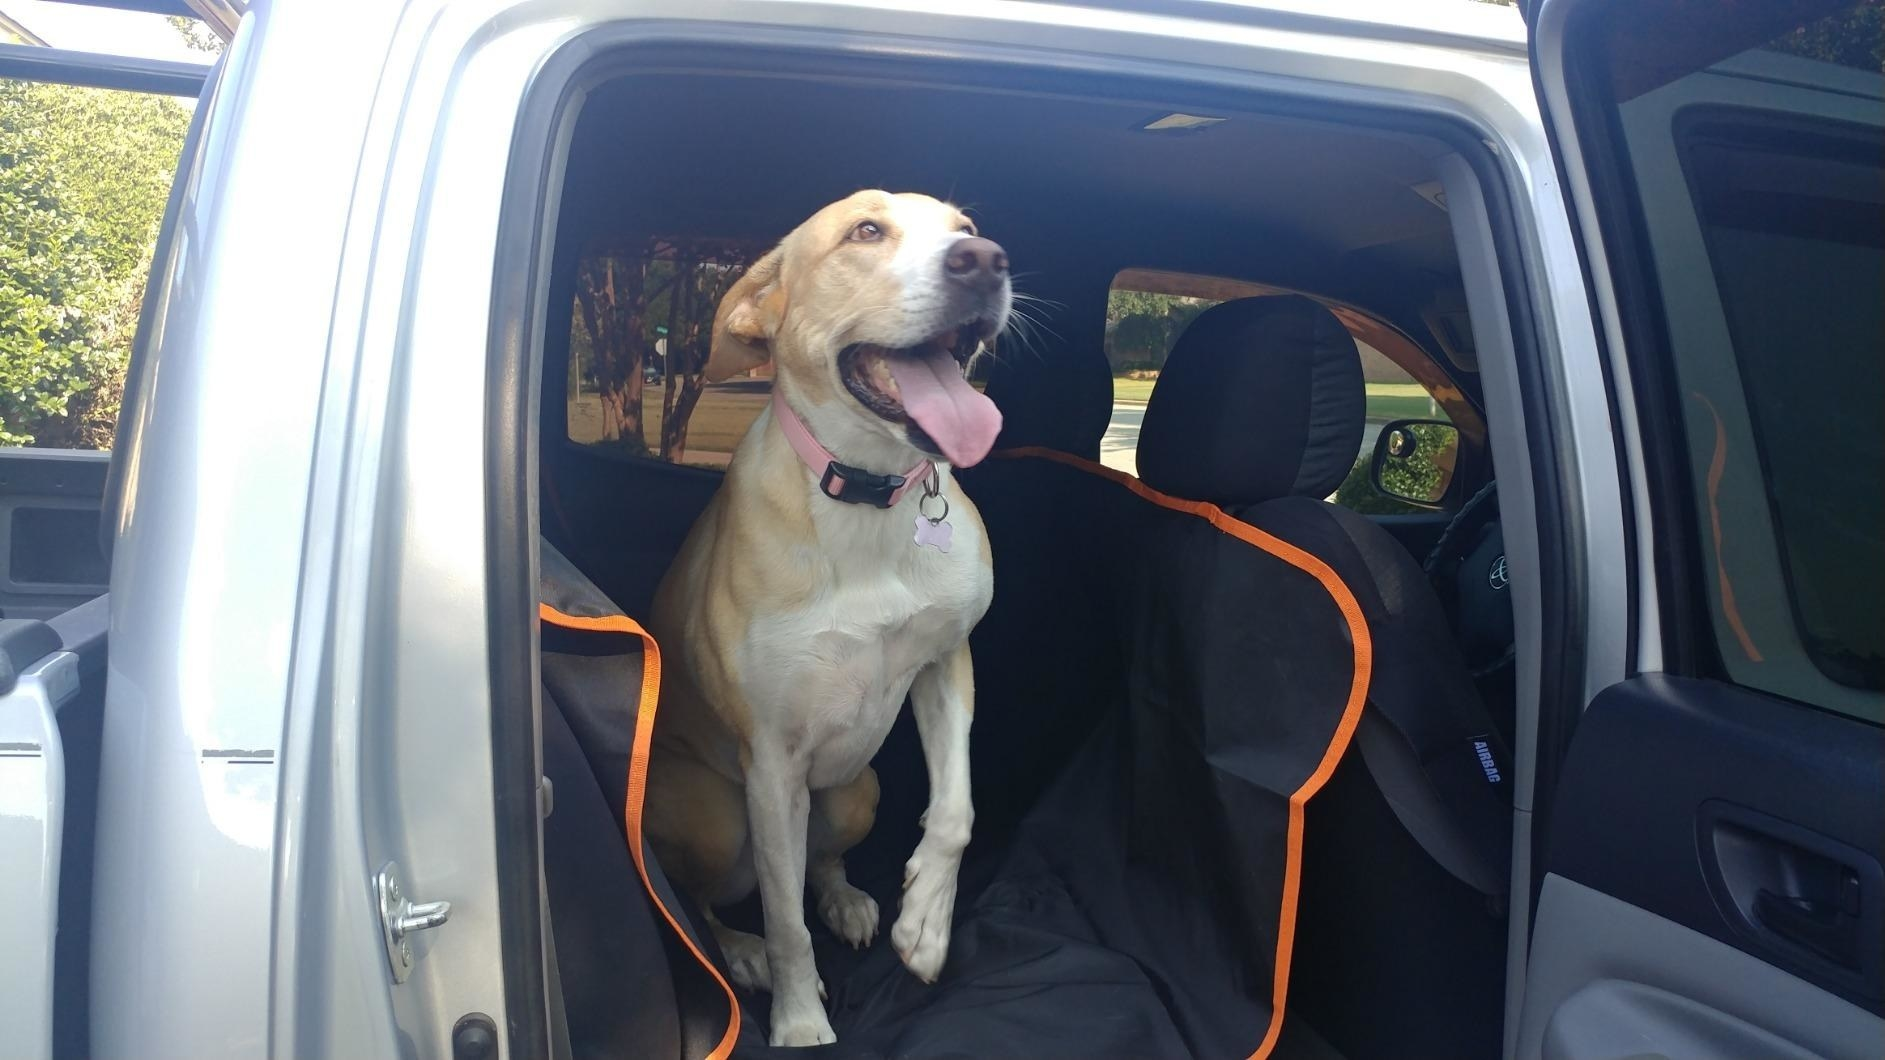 Dog sitting on black and orange seat cover